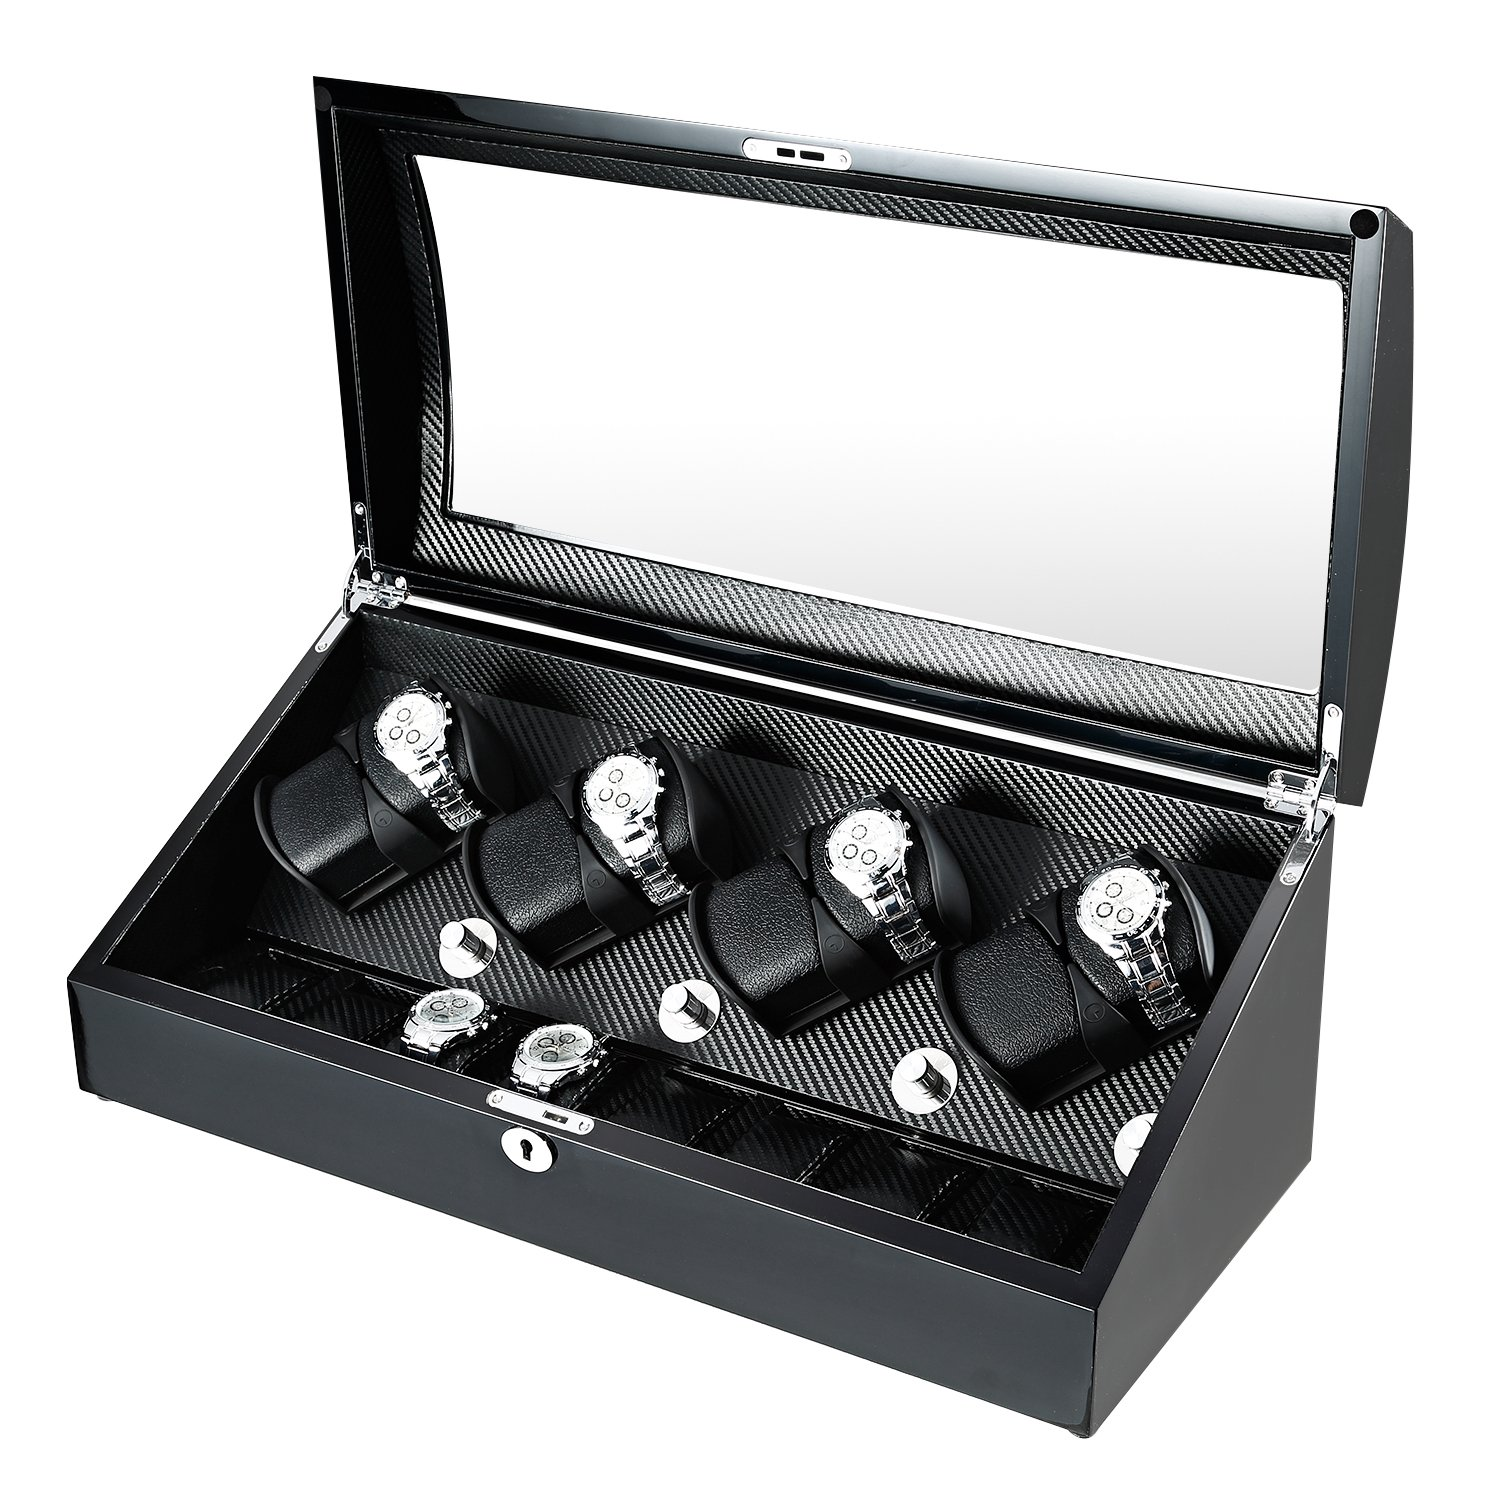 OLYMBROS Wooden Quad Automatic Watch Winder 8+8 Storage Boxes for 16 Watches with LED Light by Olymbros